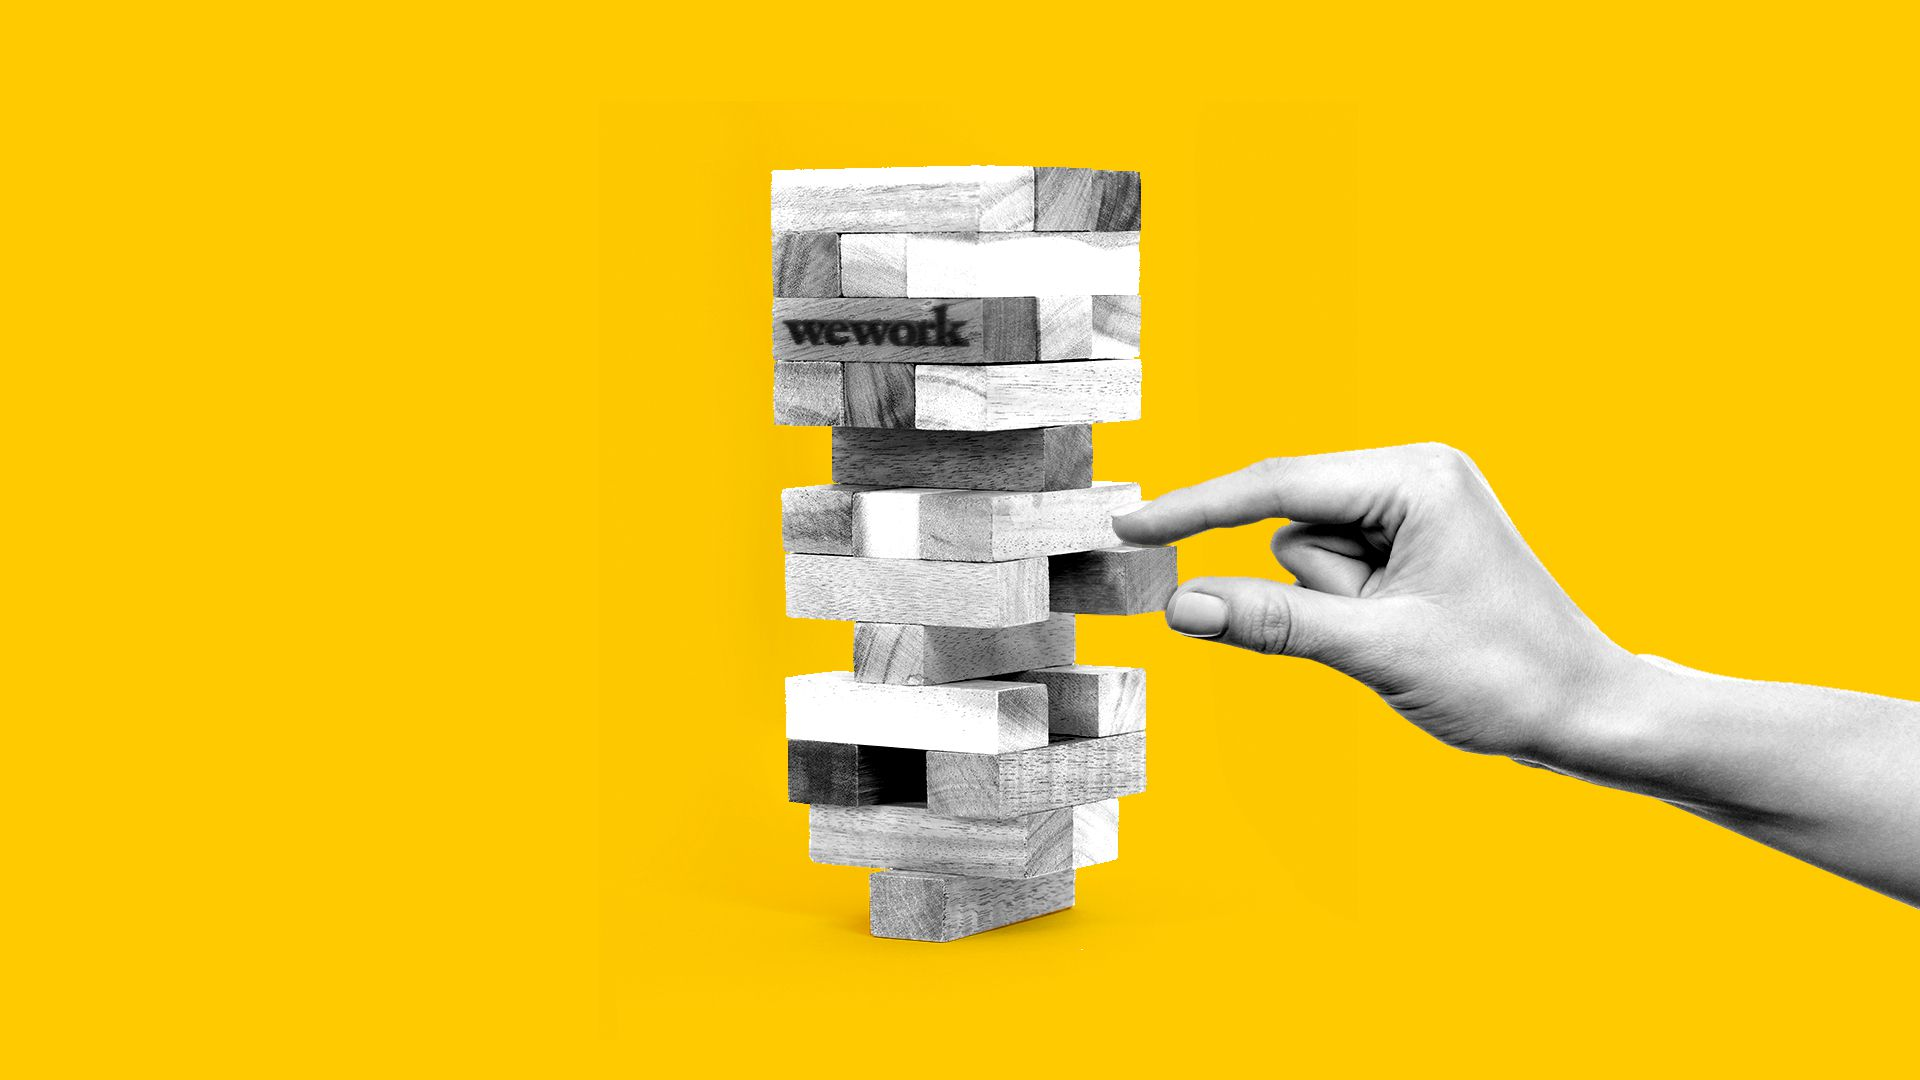 Illustration of a wework building as a Jenga tower with a hand removing a piece.